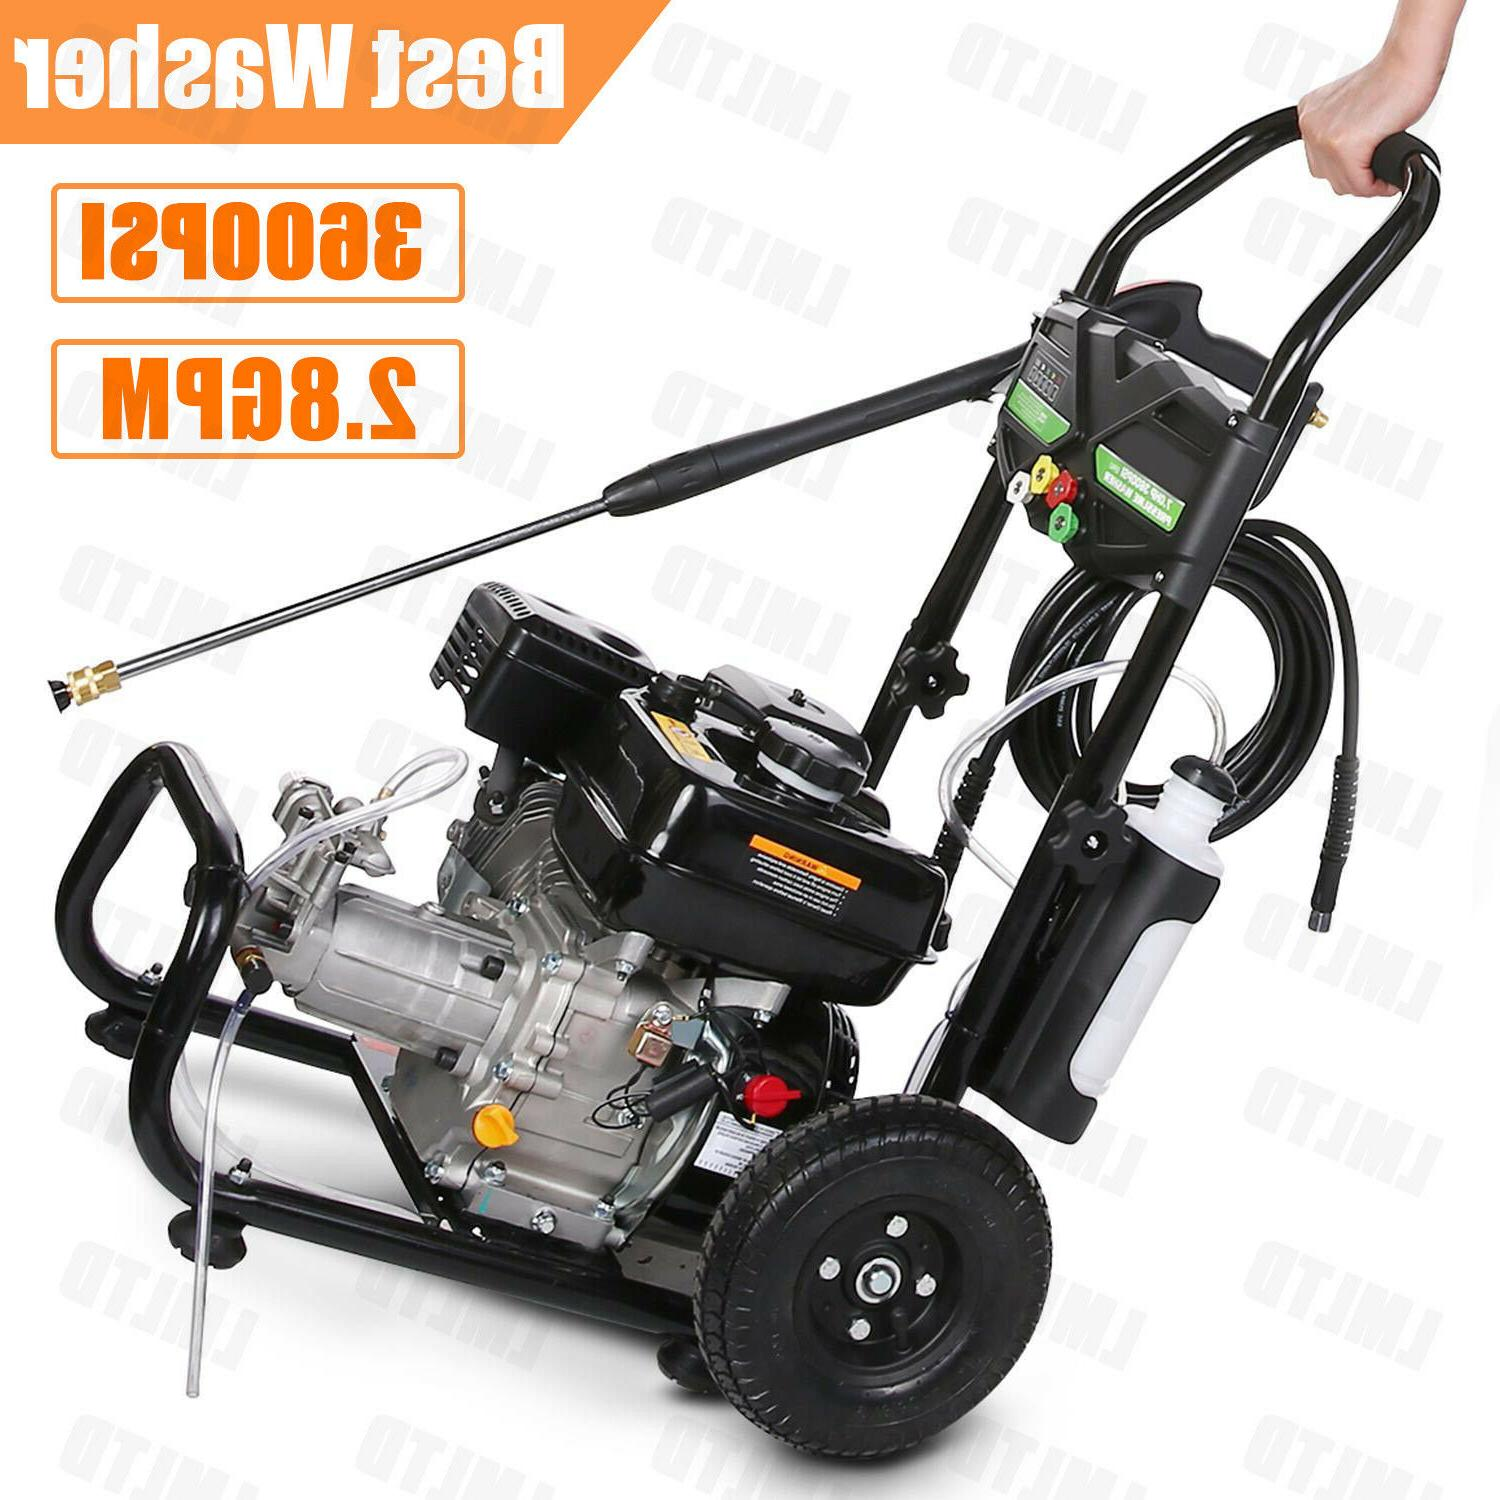 7hp gas powered pressure washer cold water